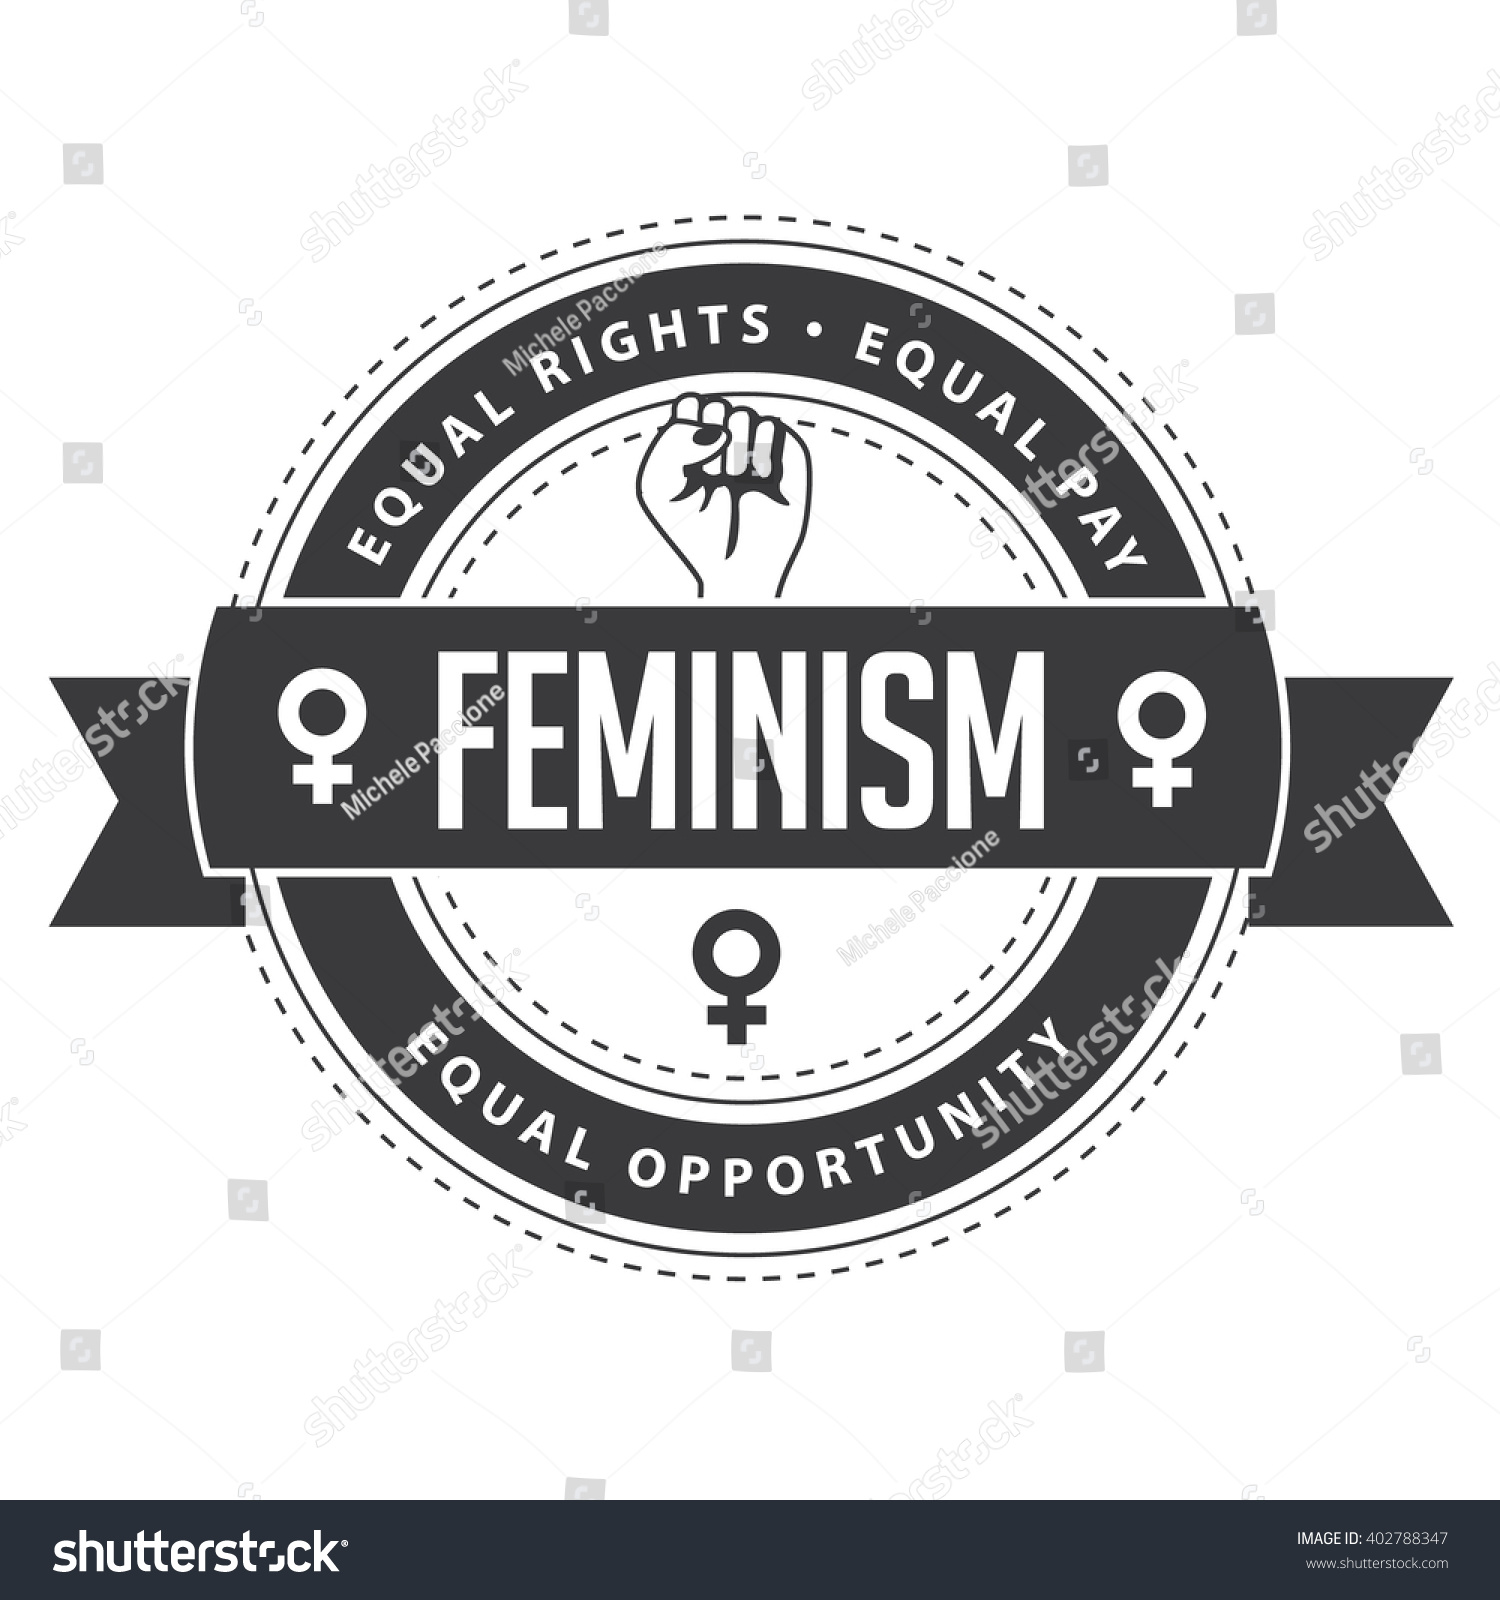 Feminism symbol circular badge feminist icon stock illustration feminism symbol circular badge feminist icon logo inspiration rallying cry for equal pay buycottarizona Image collections